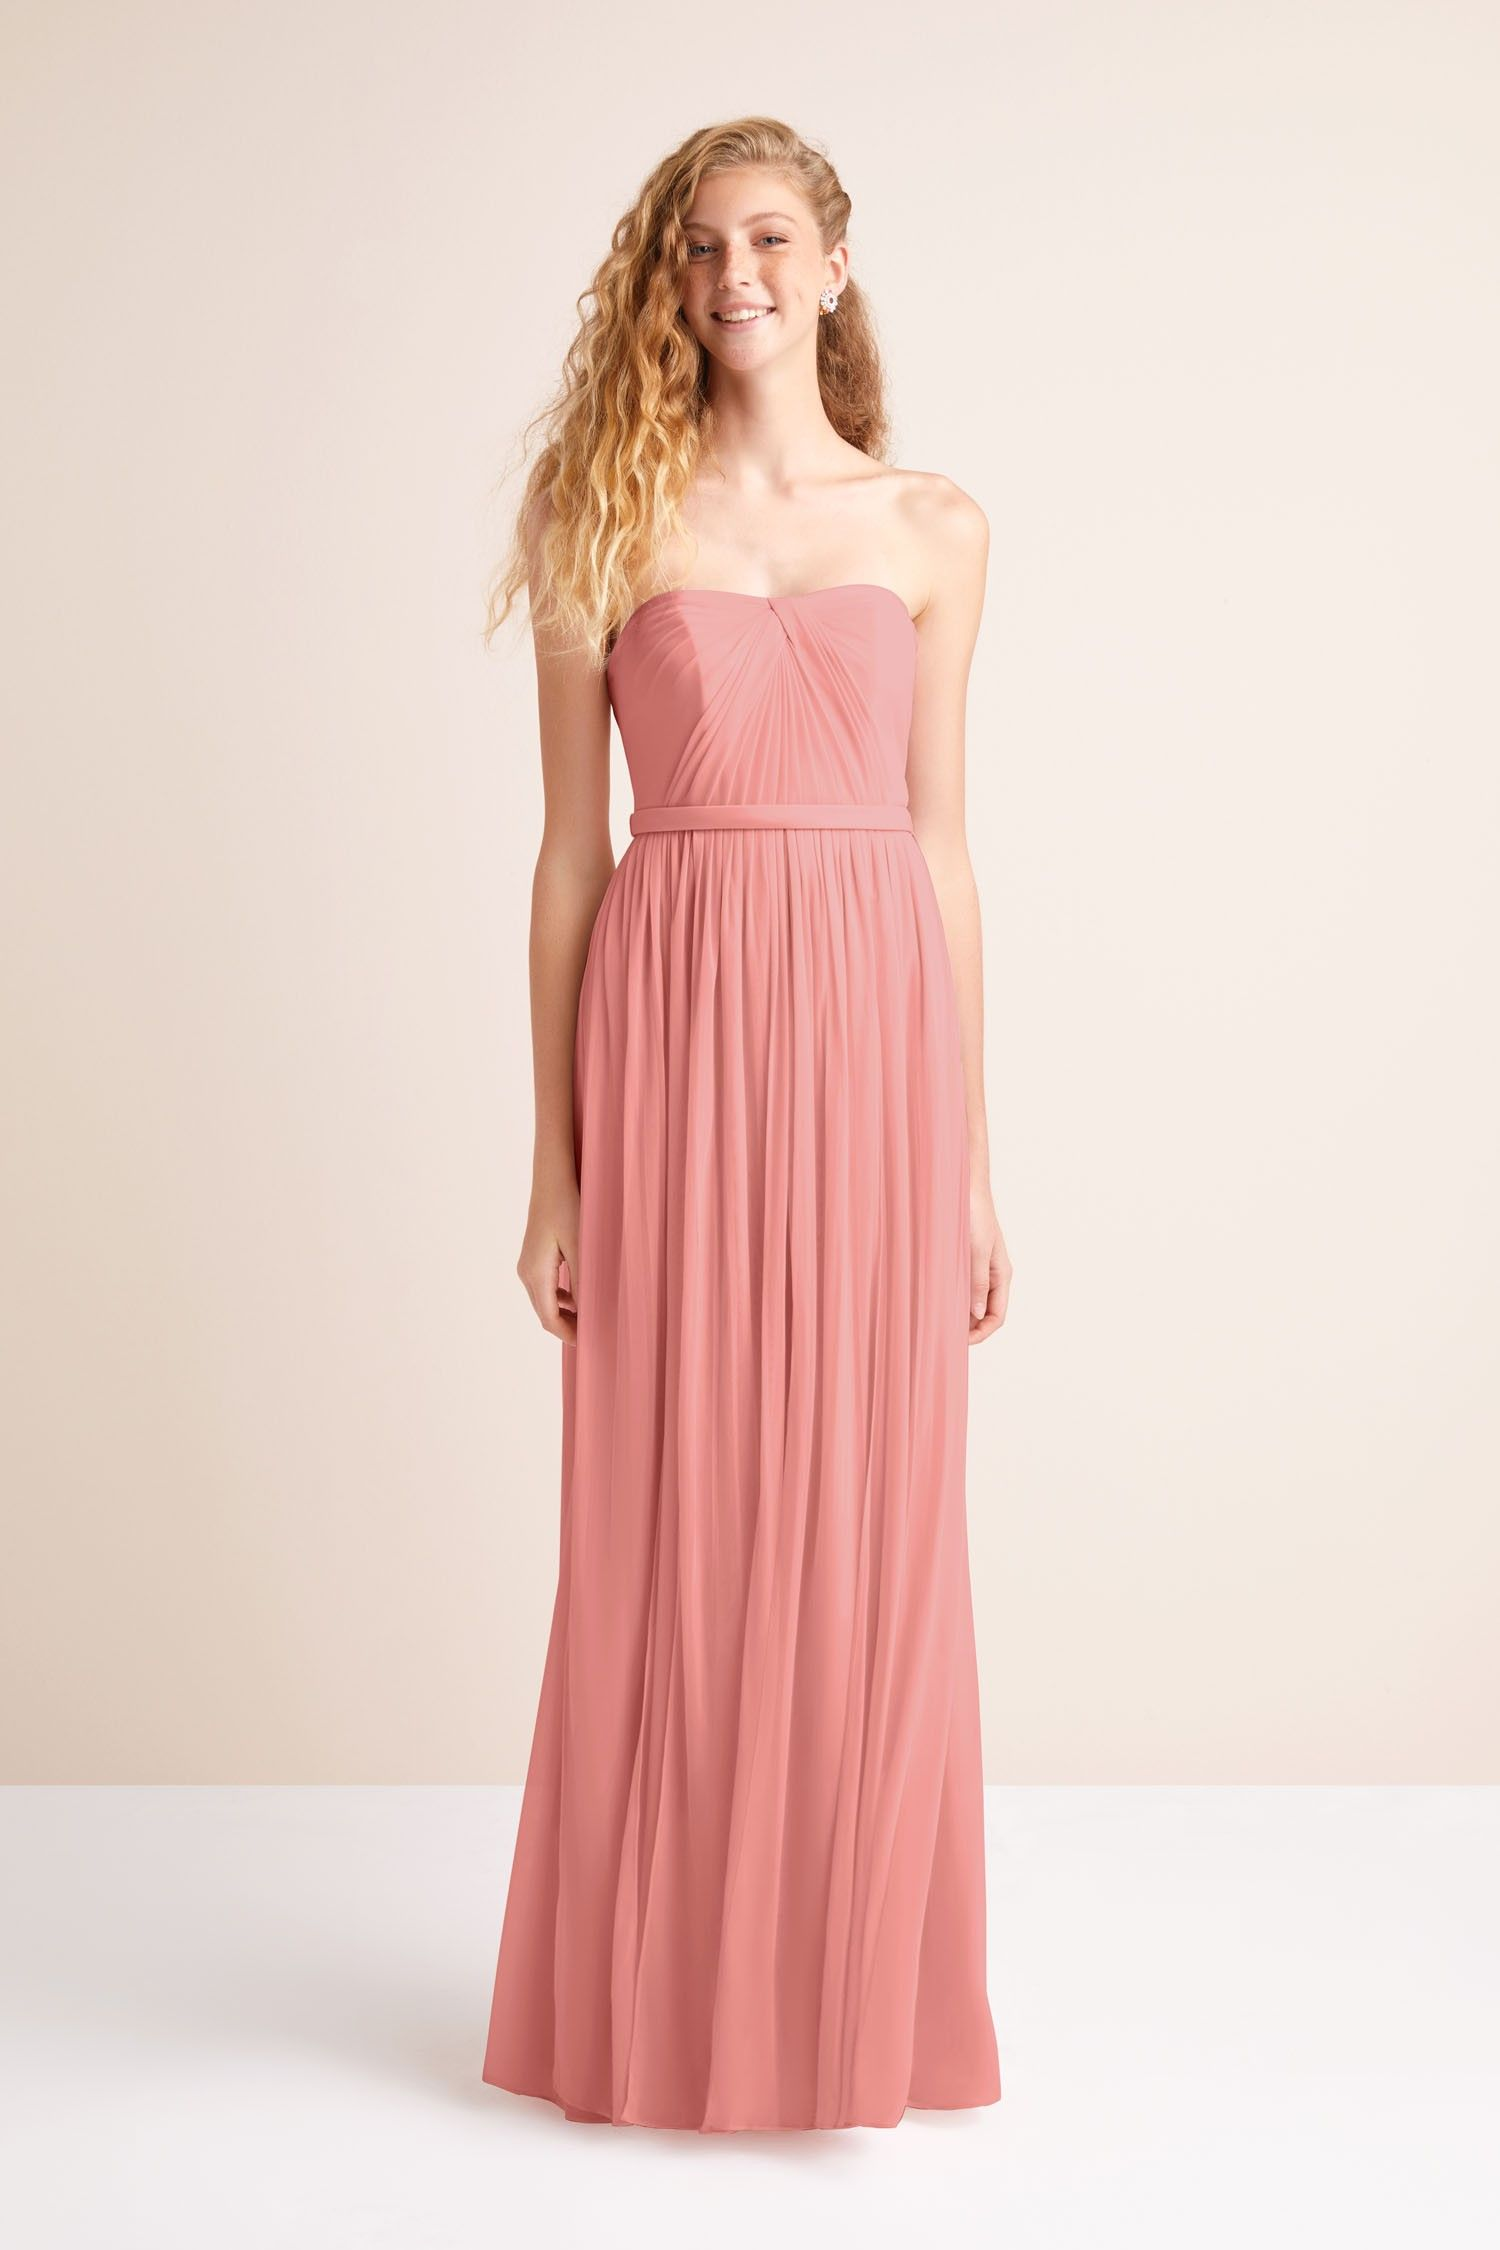 Long Mesh Style,Your,Way 6 Tie Bridesmaid Dress